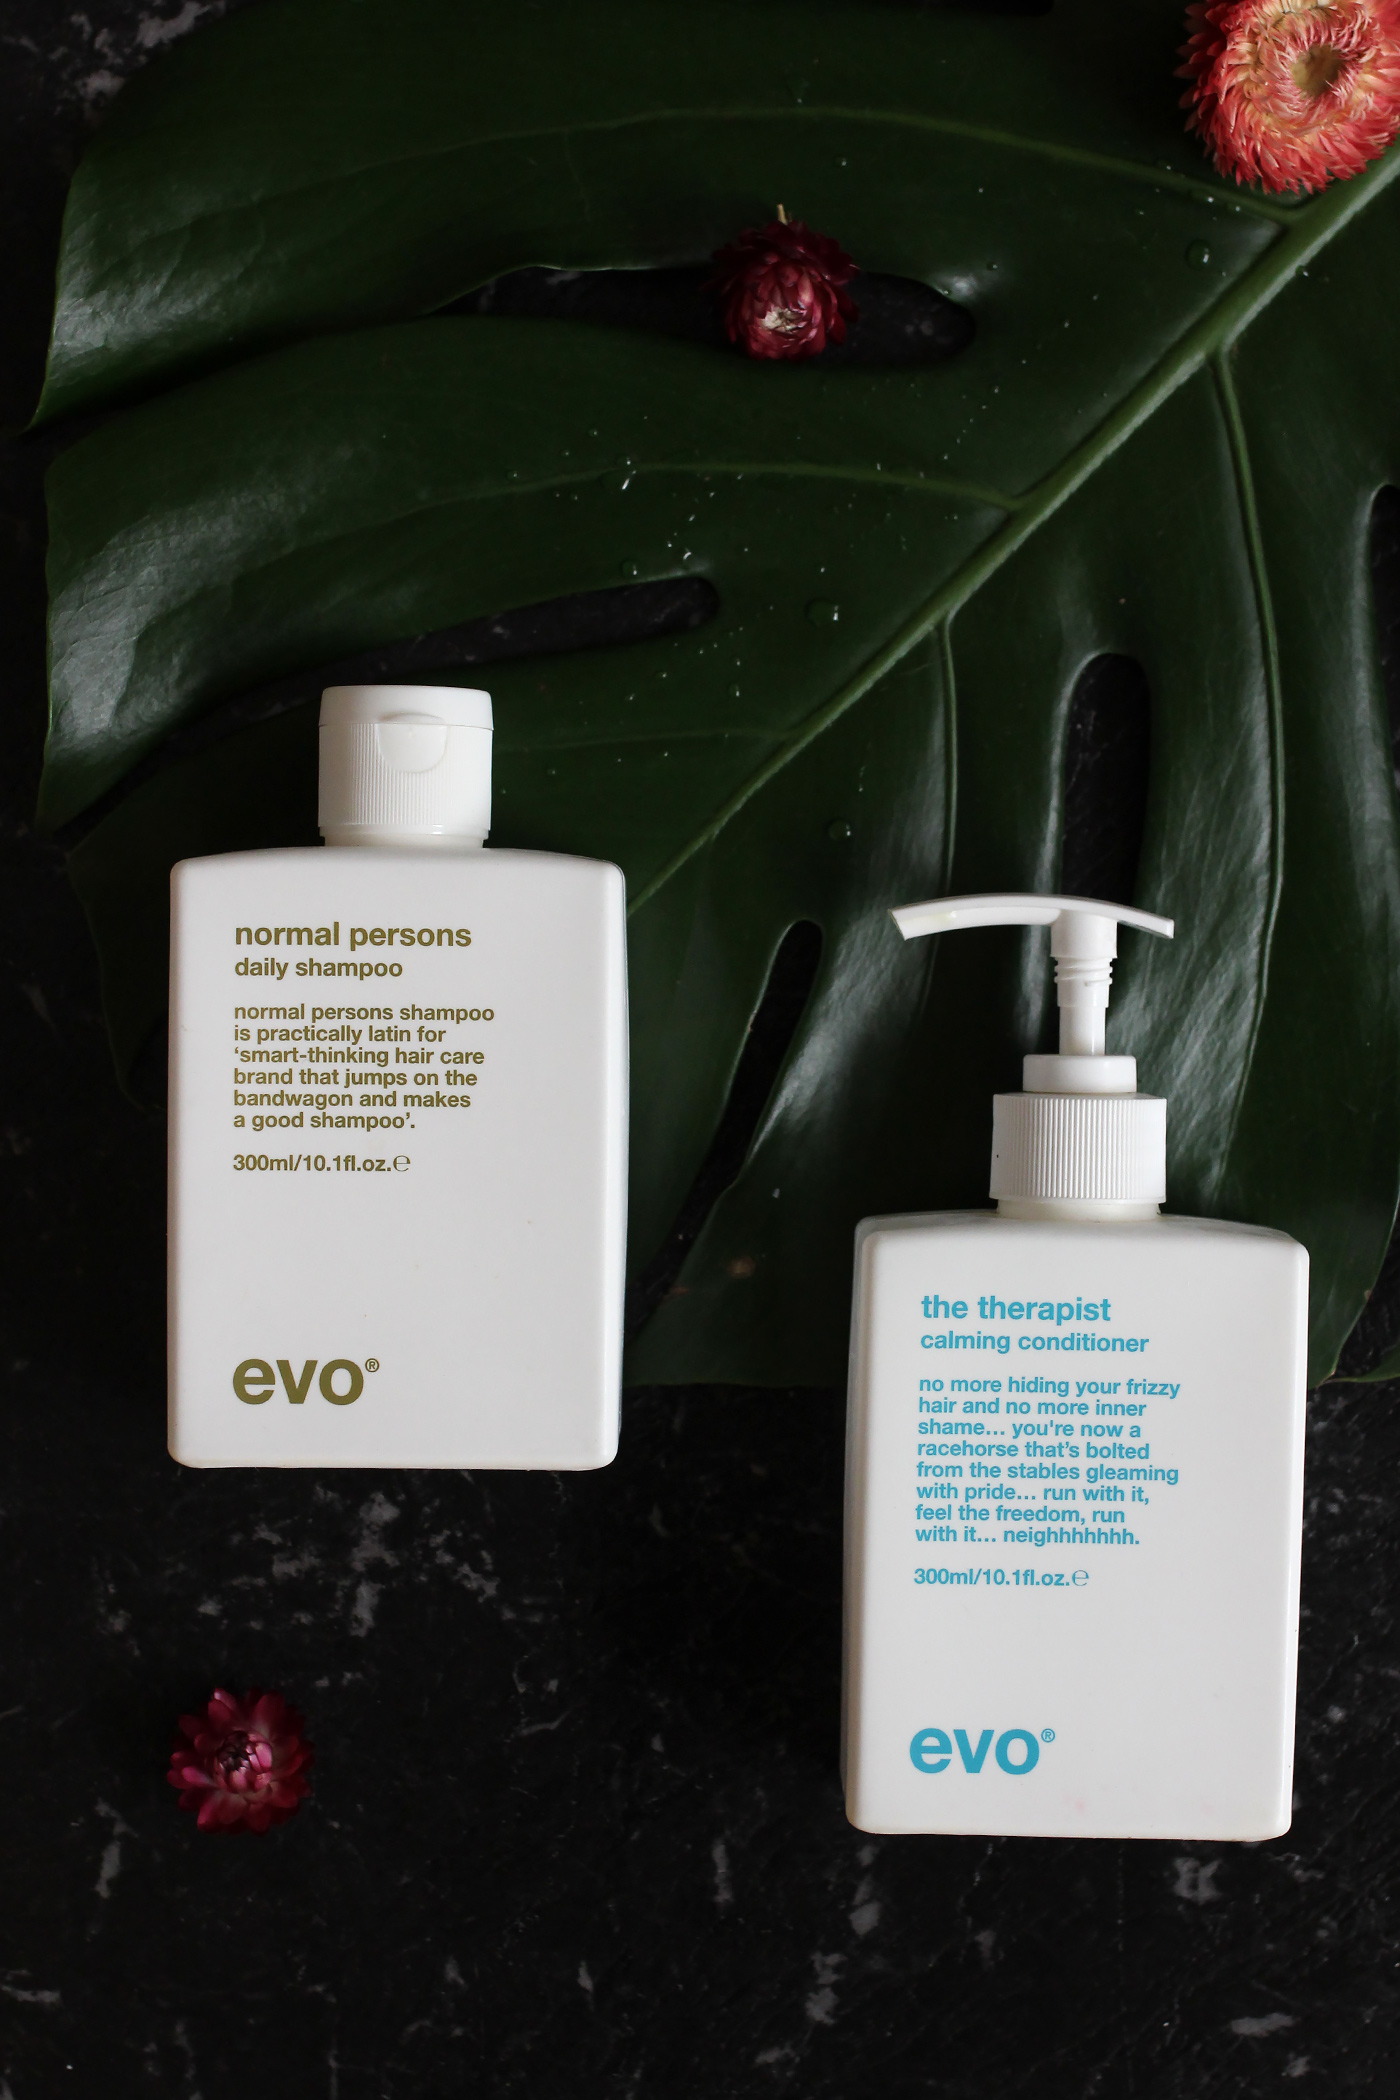 Evo N    ormal Persons Daily Shampoo  &     Therapist Calming Conditioner